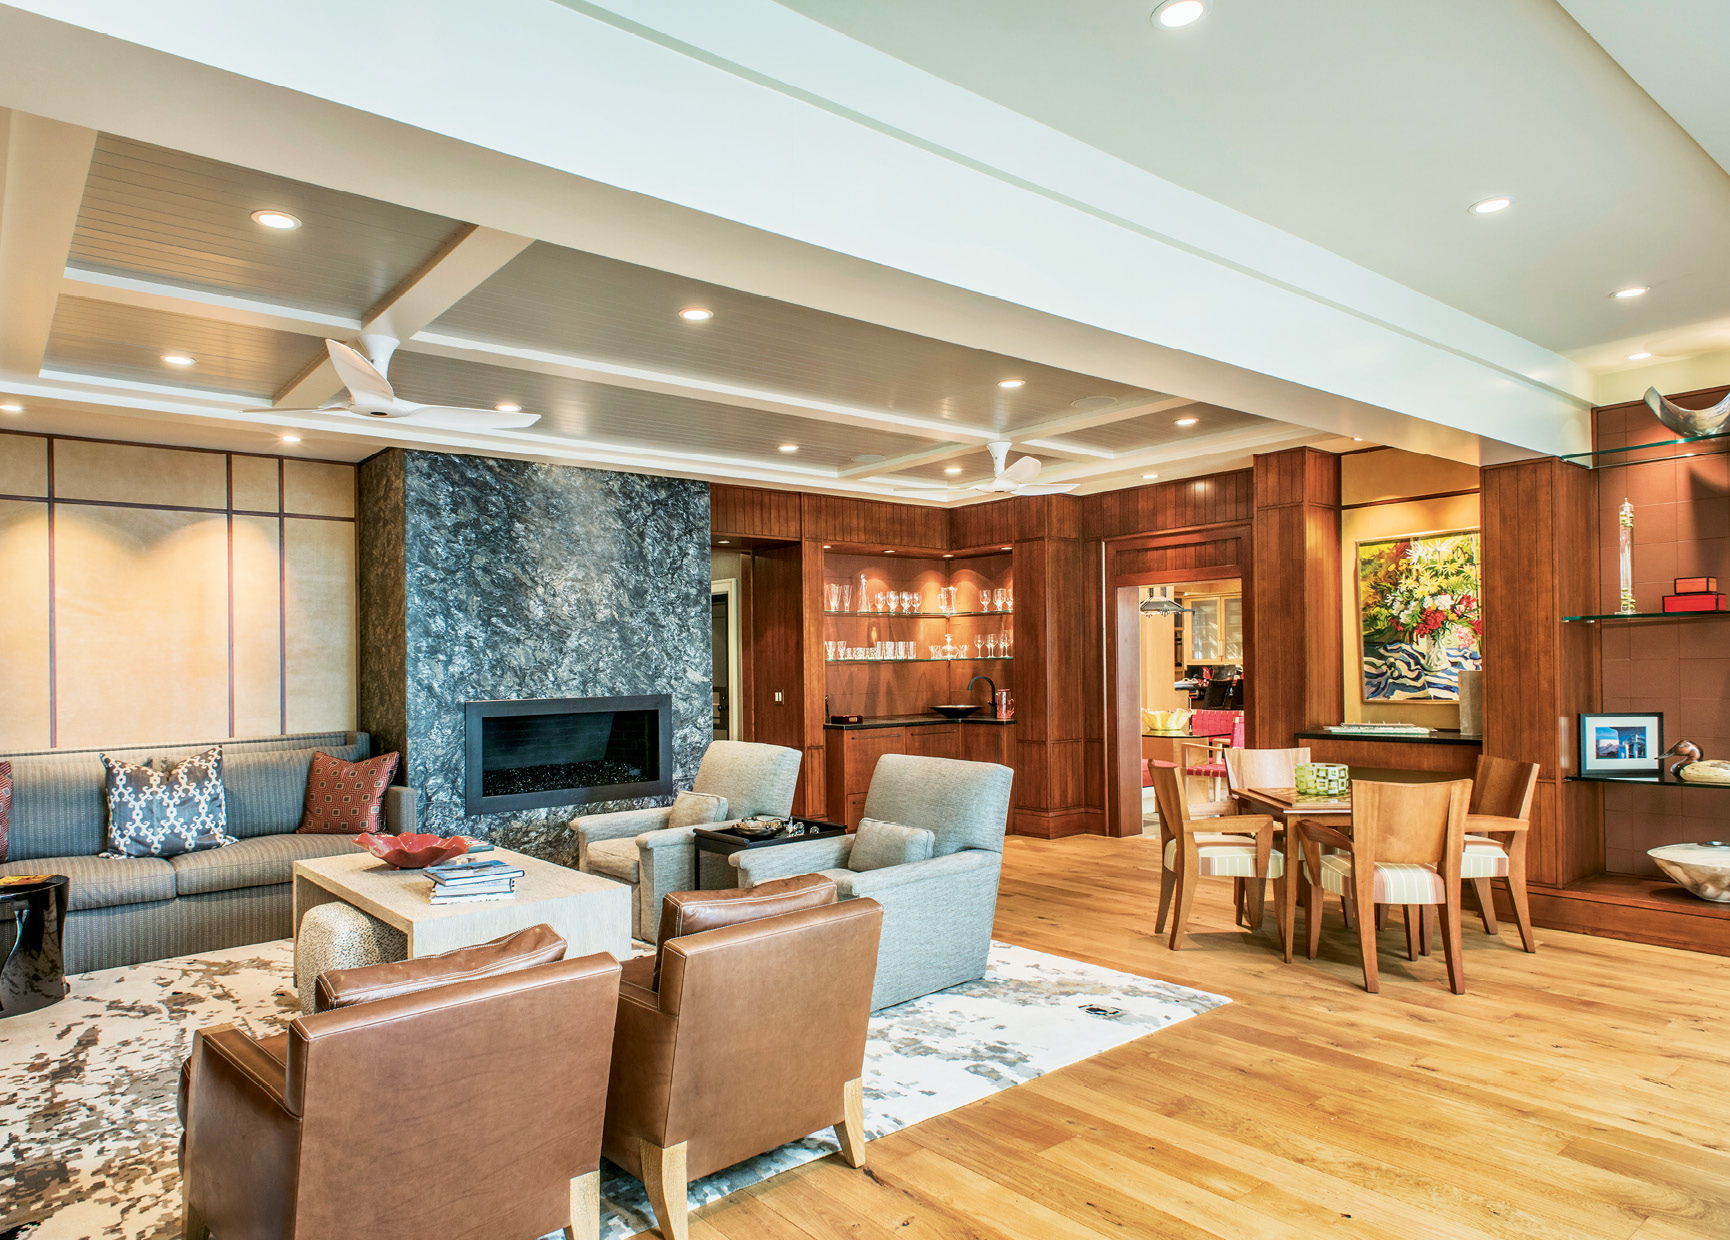 Leather panels add warmth and texture on the walls, and two sitting areas accommodate cozy conversations or big parties.